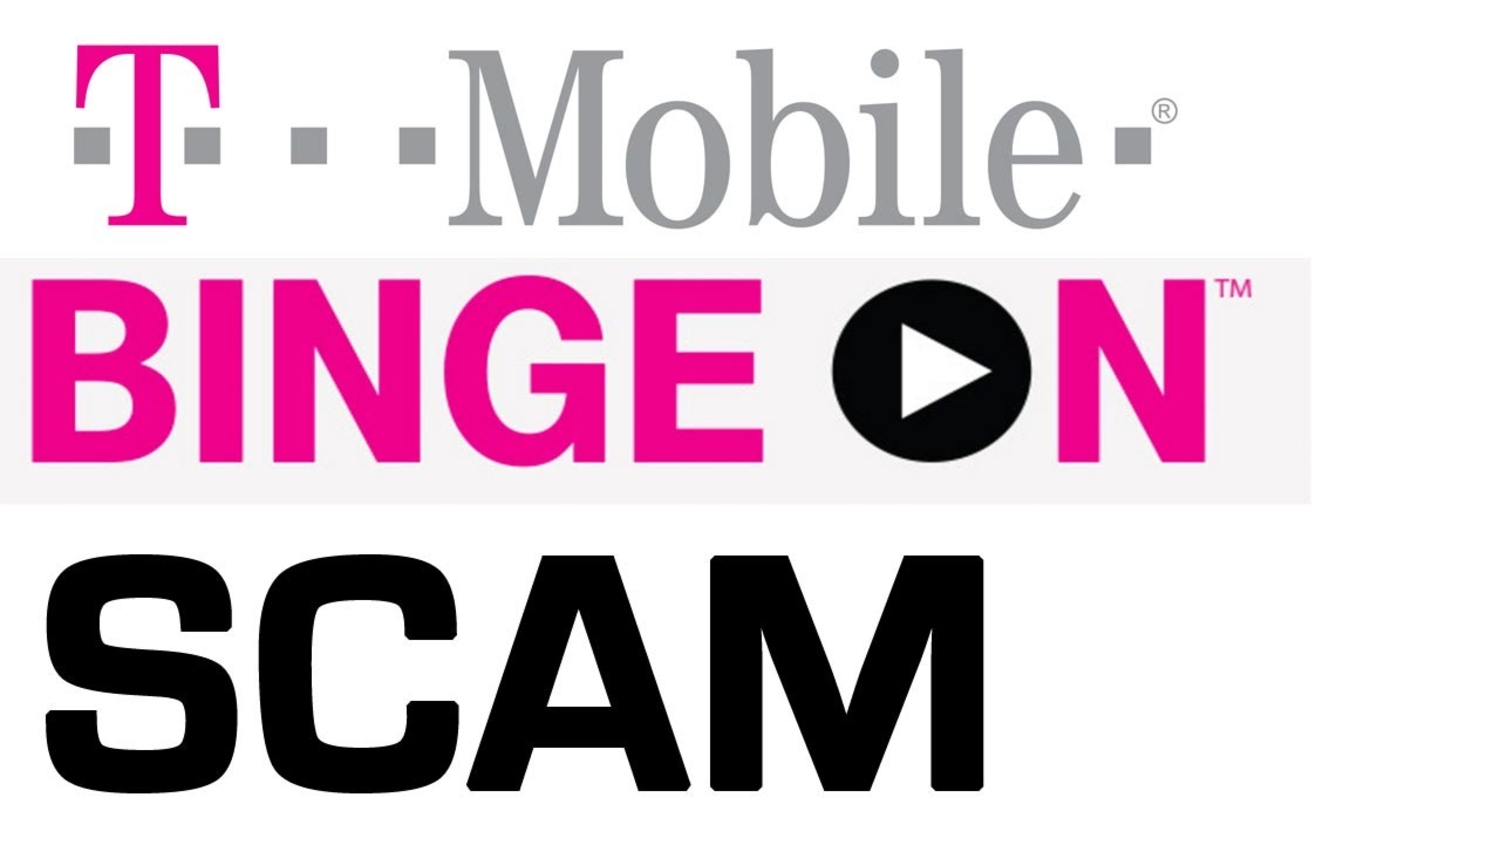 T-Mobile Binge On Scam DualSim.jpg